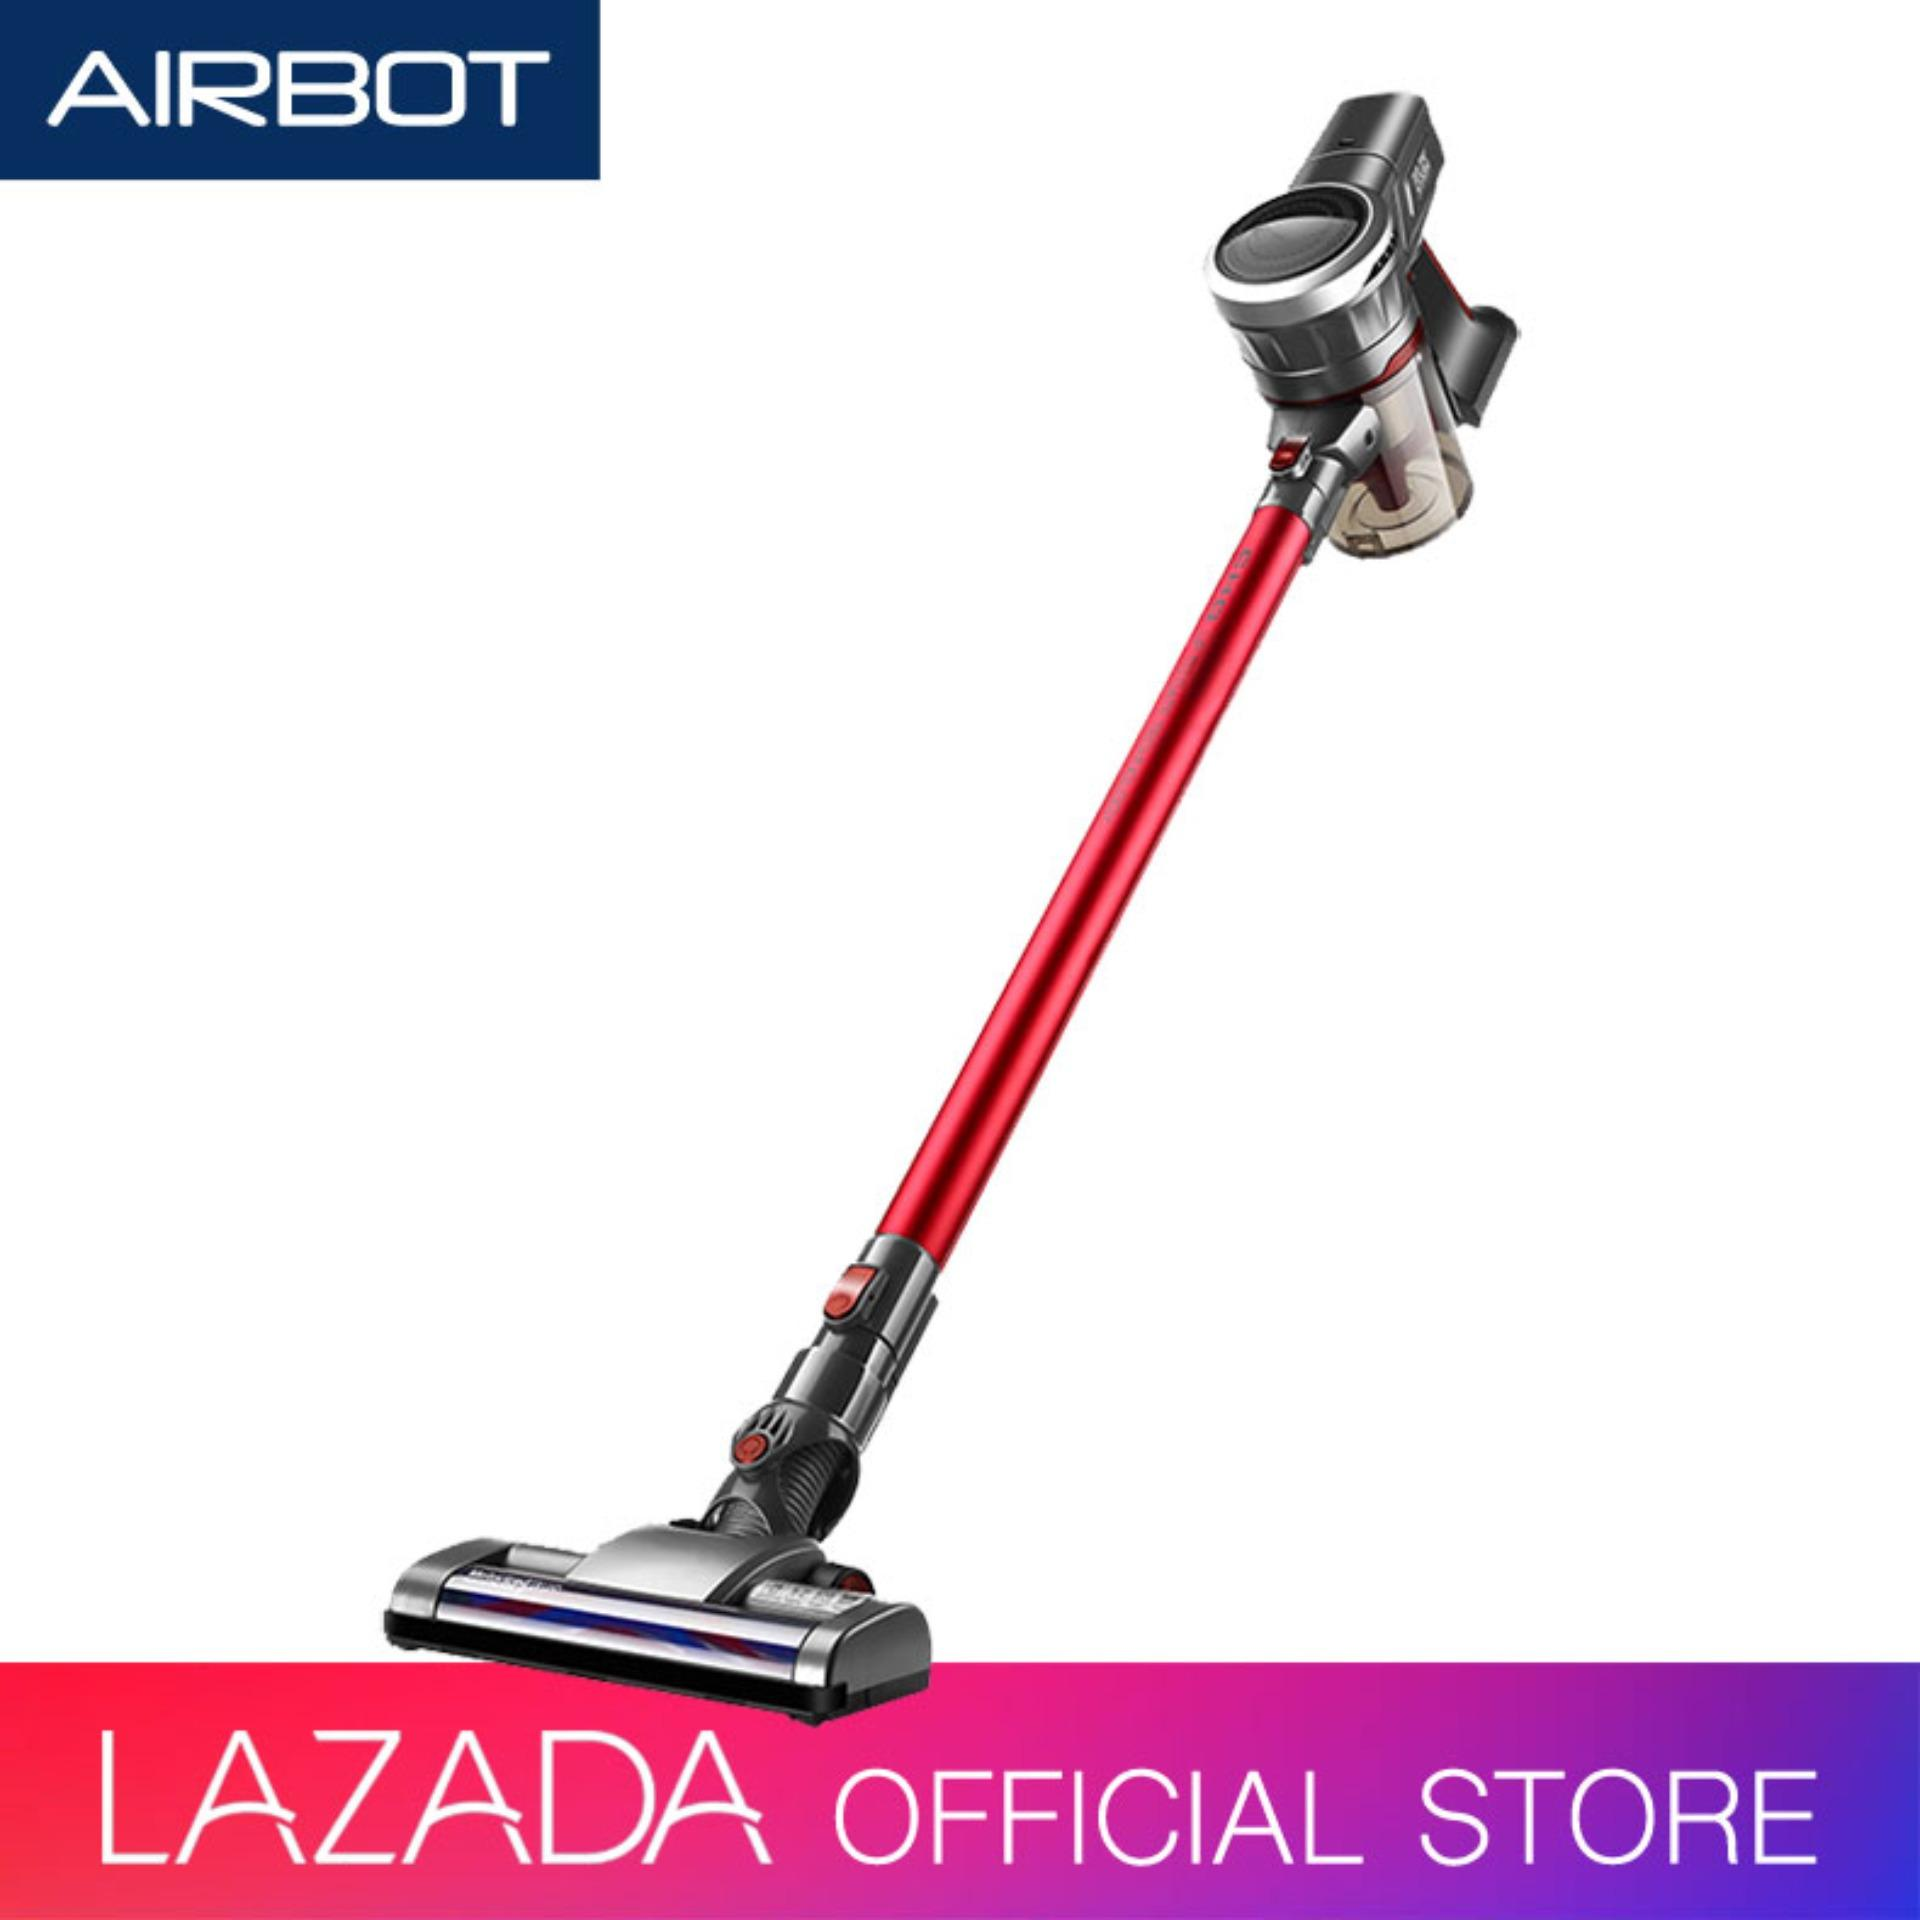 Airbot Supersonics Fluffy Cordless Vacuum Cleaner Stick Handheld Mode For Floor Car Carpet Sofa Mattress Curtain Keyboard ( 6 Months Warranty ) By Airbot Certified Store.